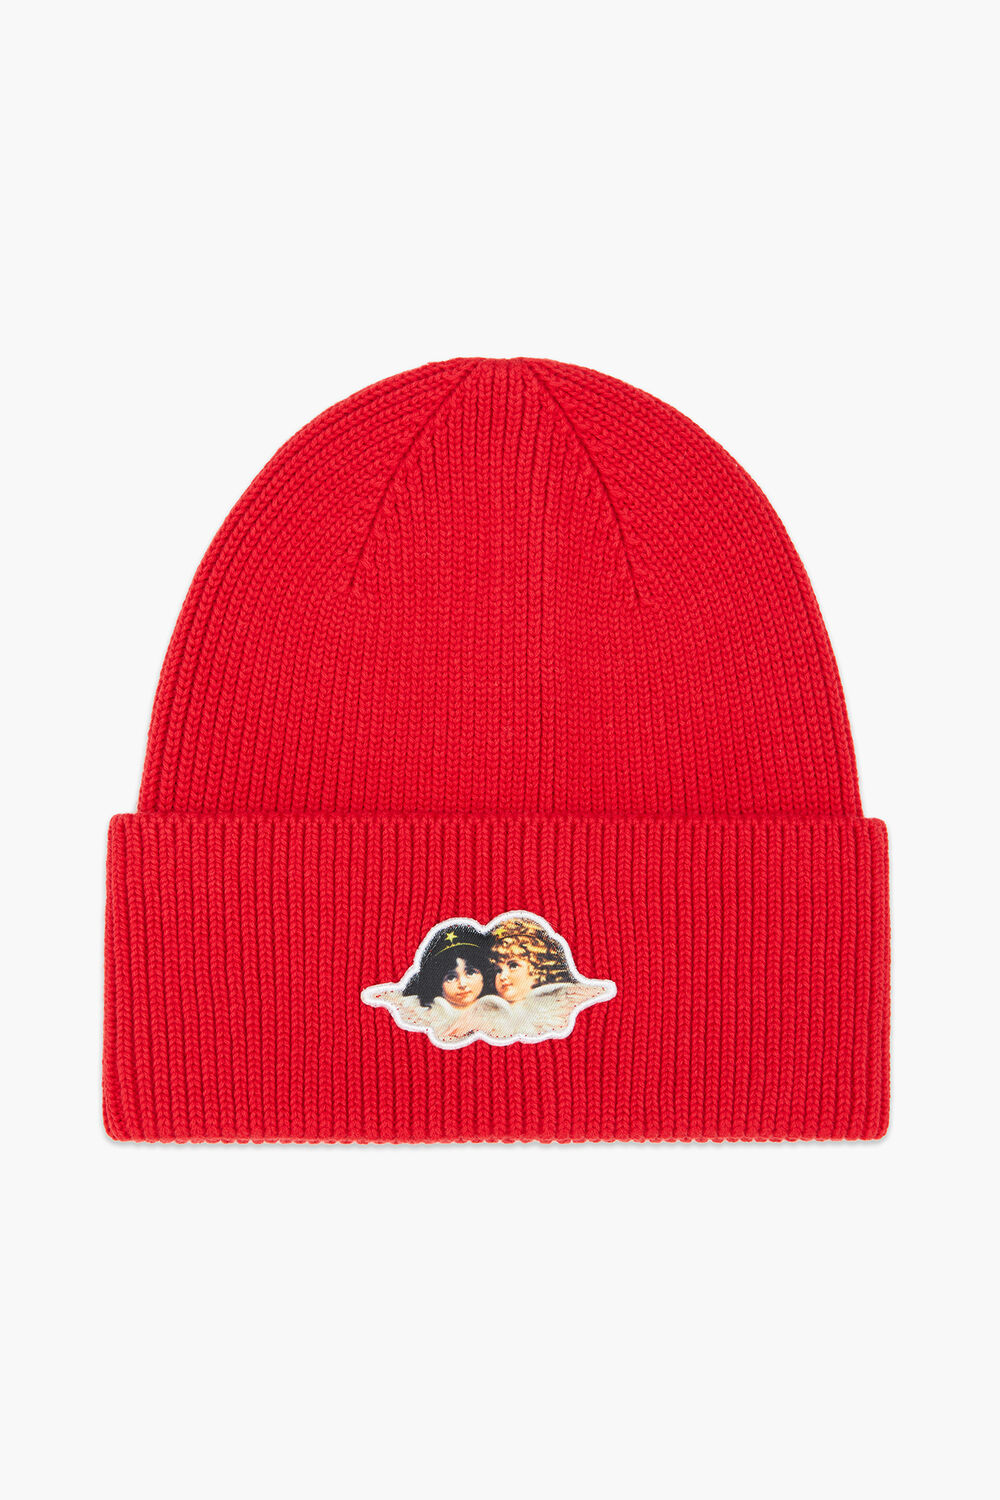 Angels Ribbed Beanie Red